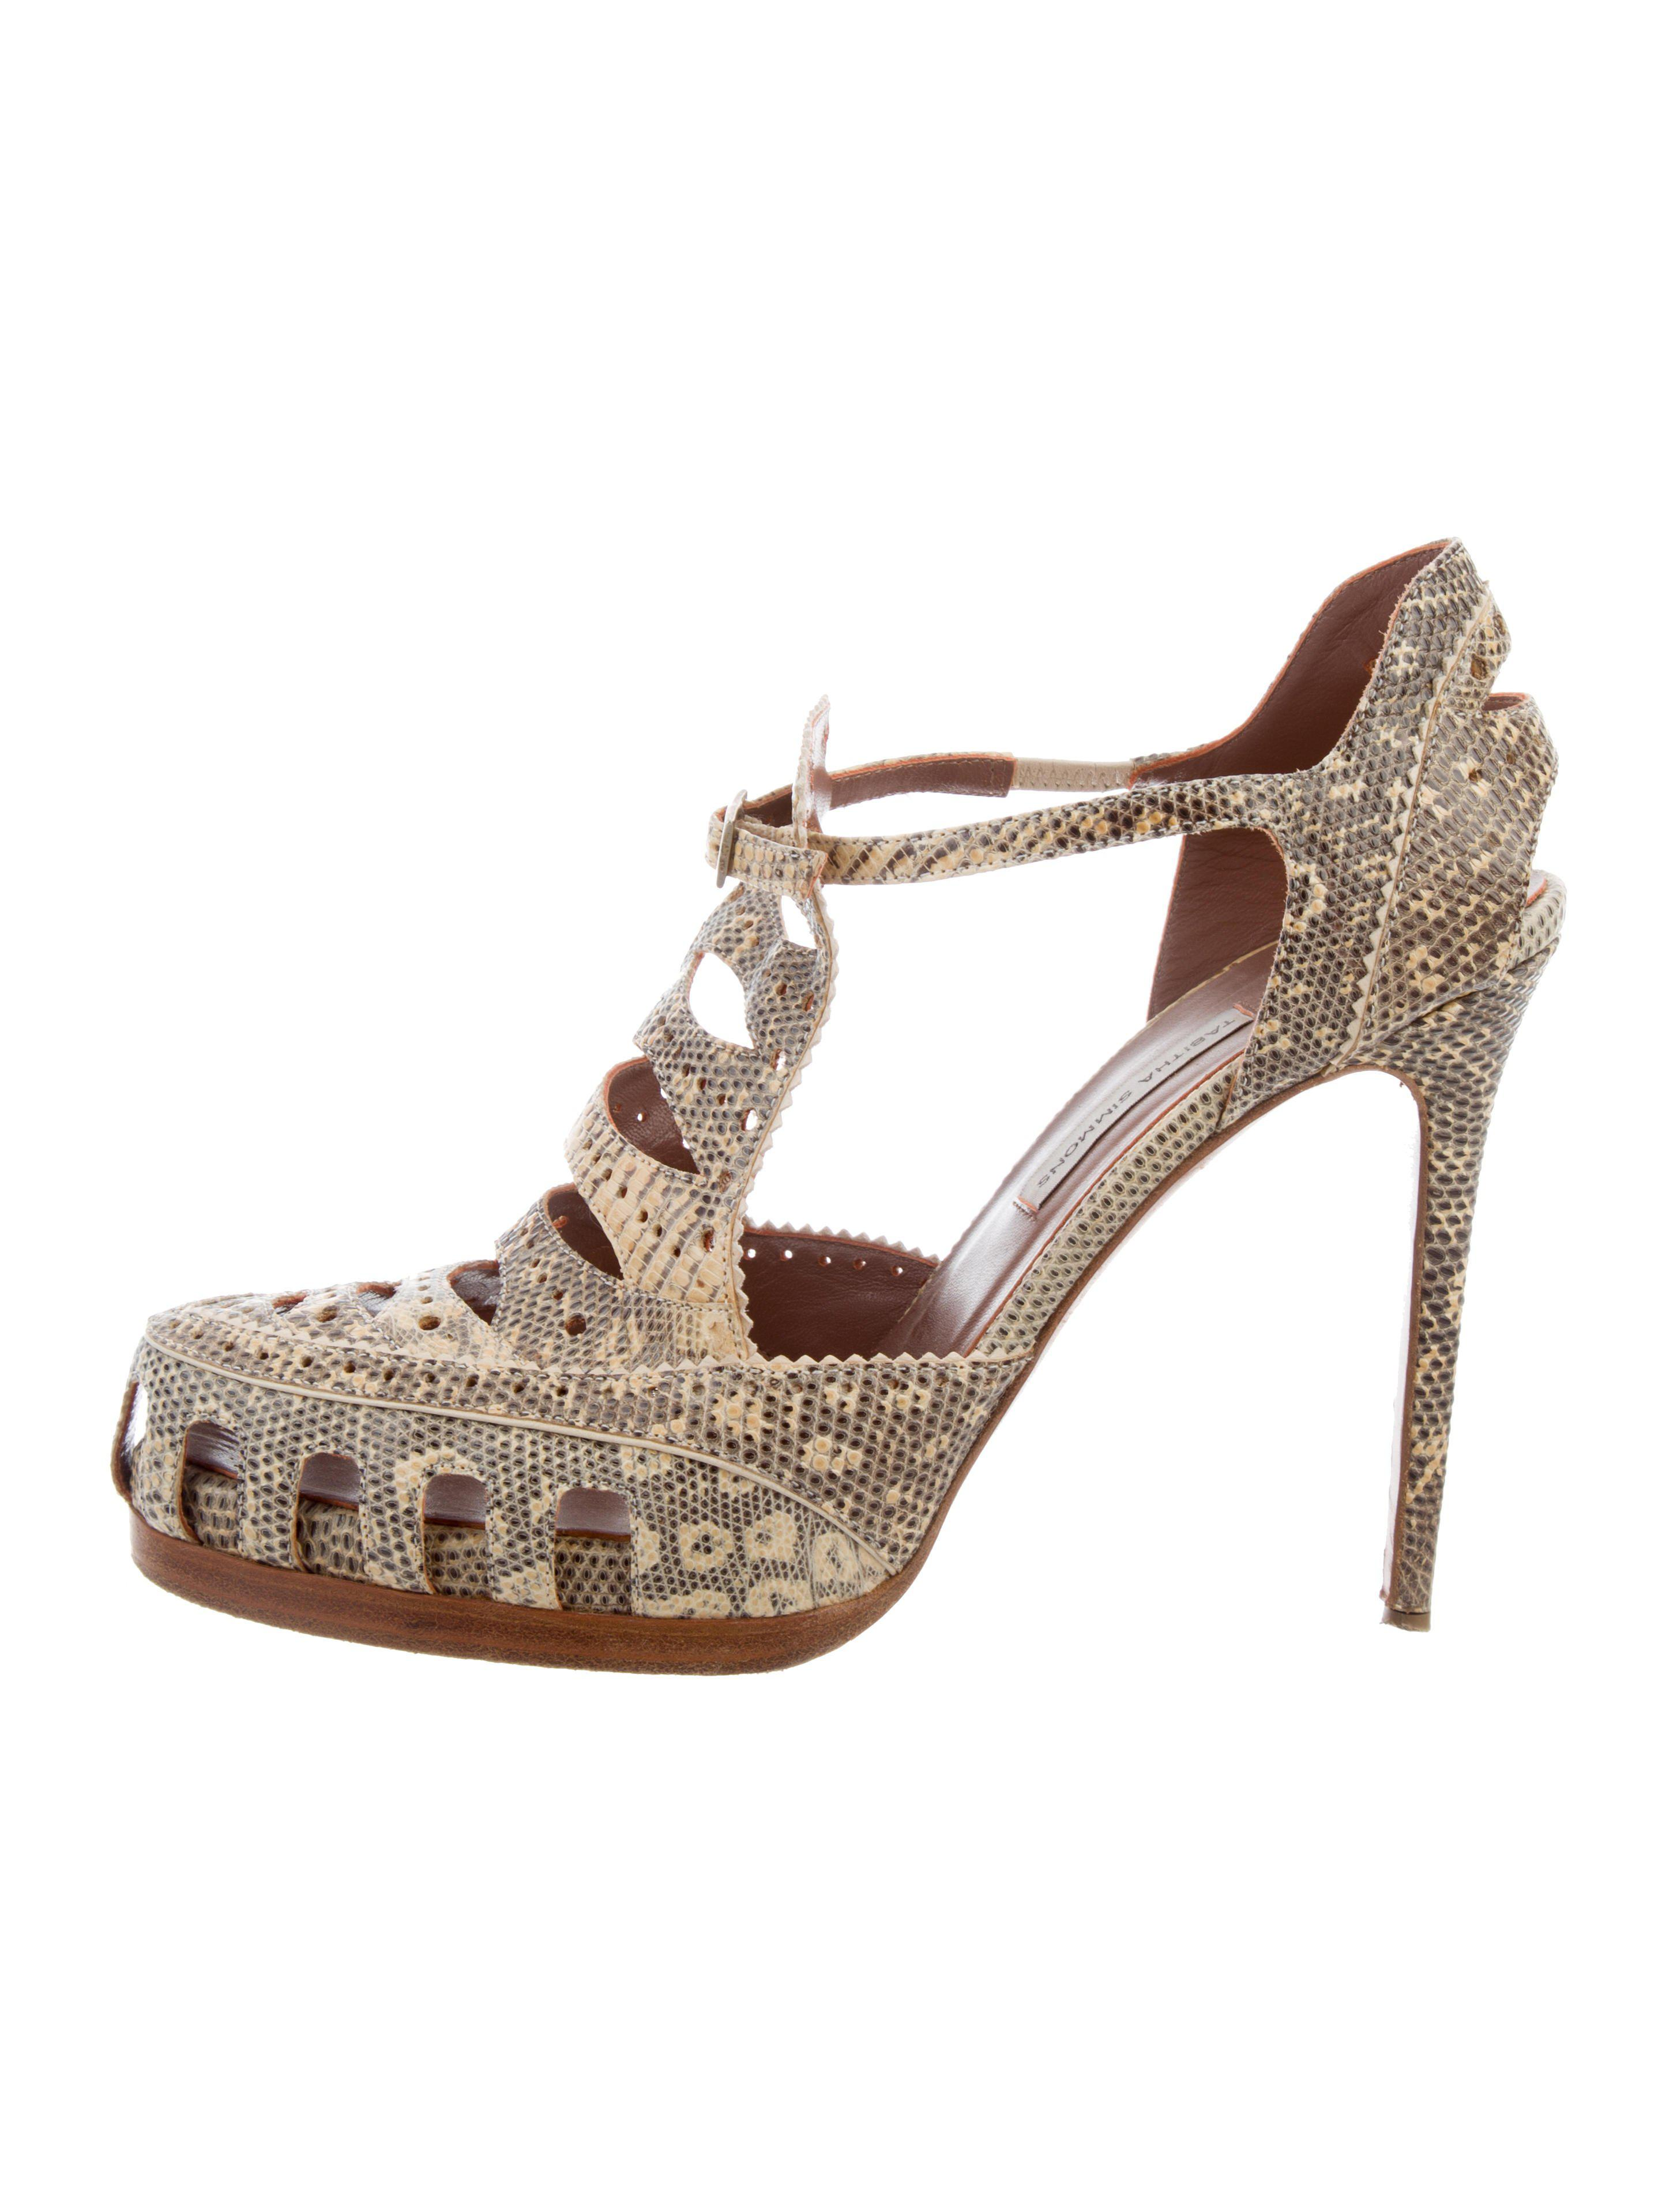 Tabitha Simmons Lizard Cutout Pumps free shipping low price fee shipping 1uHIX